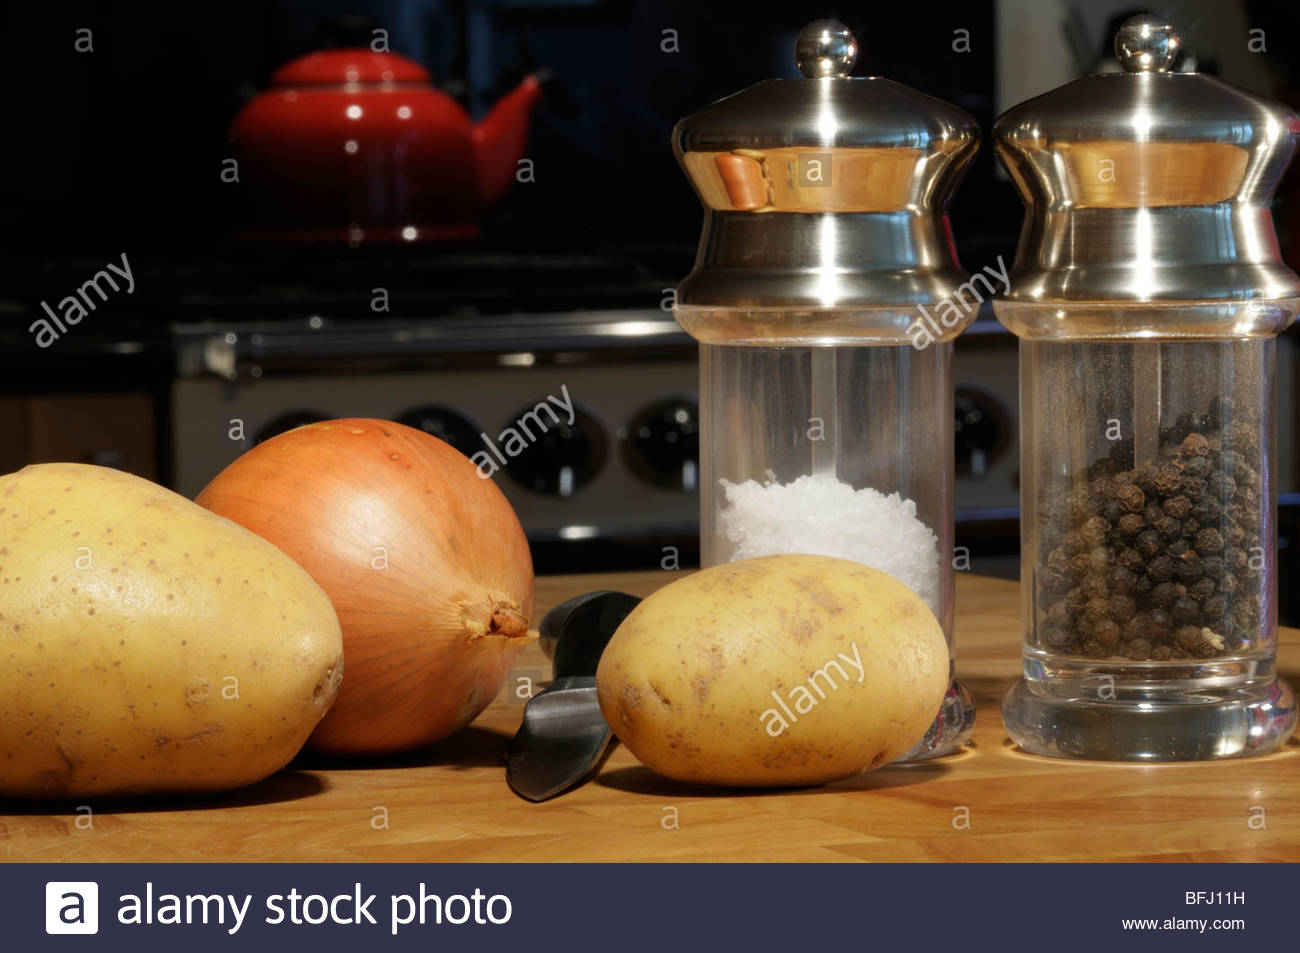 Potatoes and onion along with salt and pepper mills on a chopping board, Dorset, England, UK - Stock Image